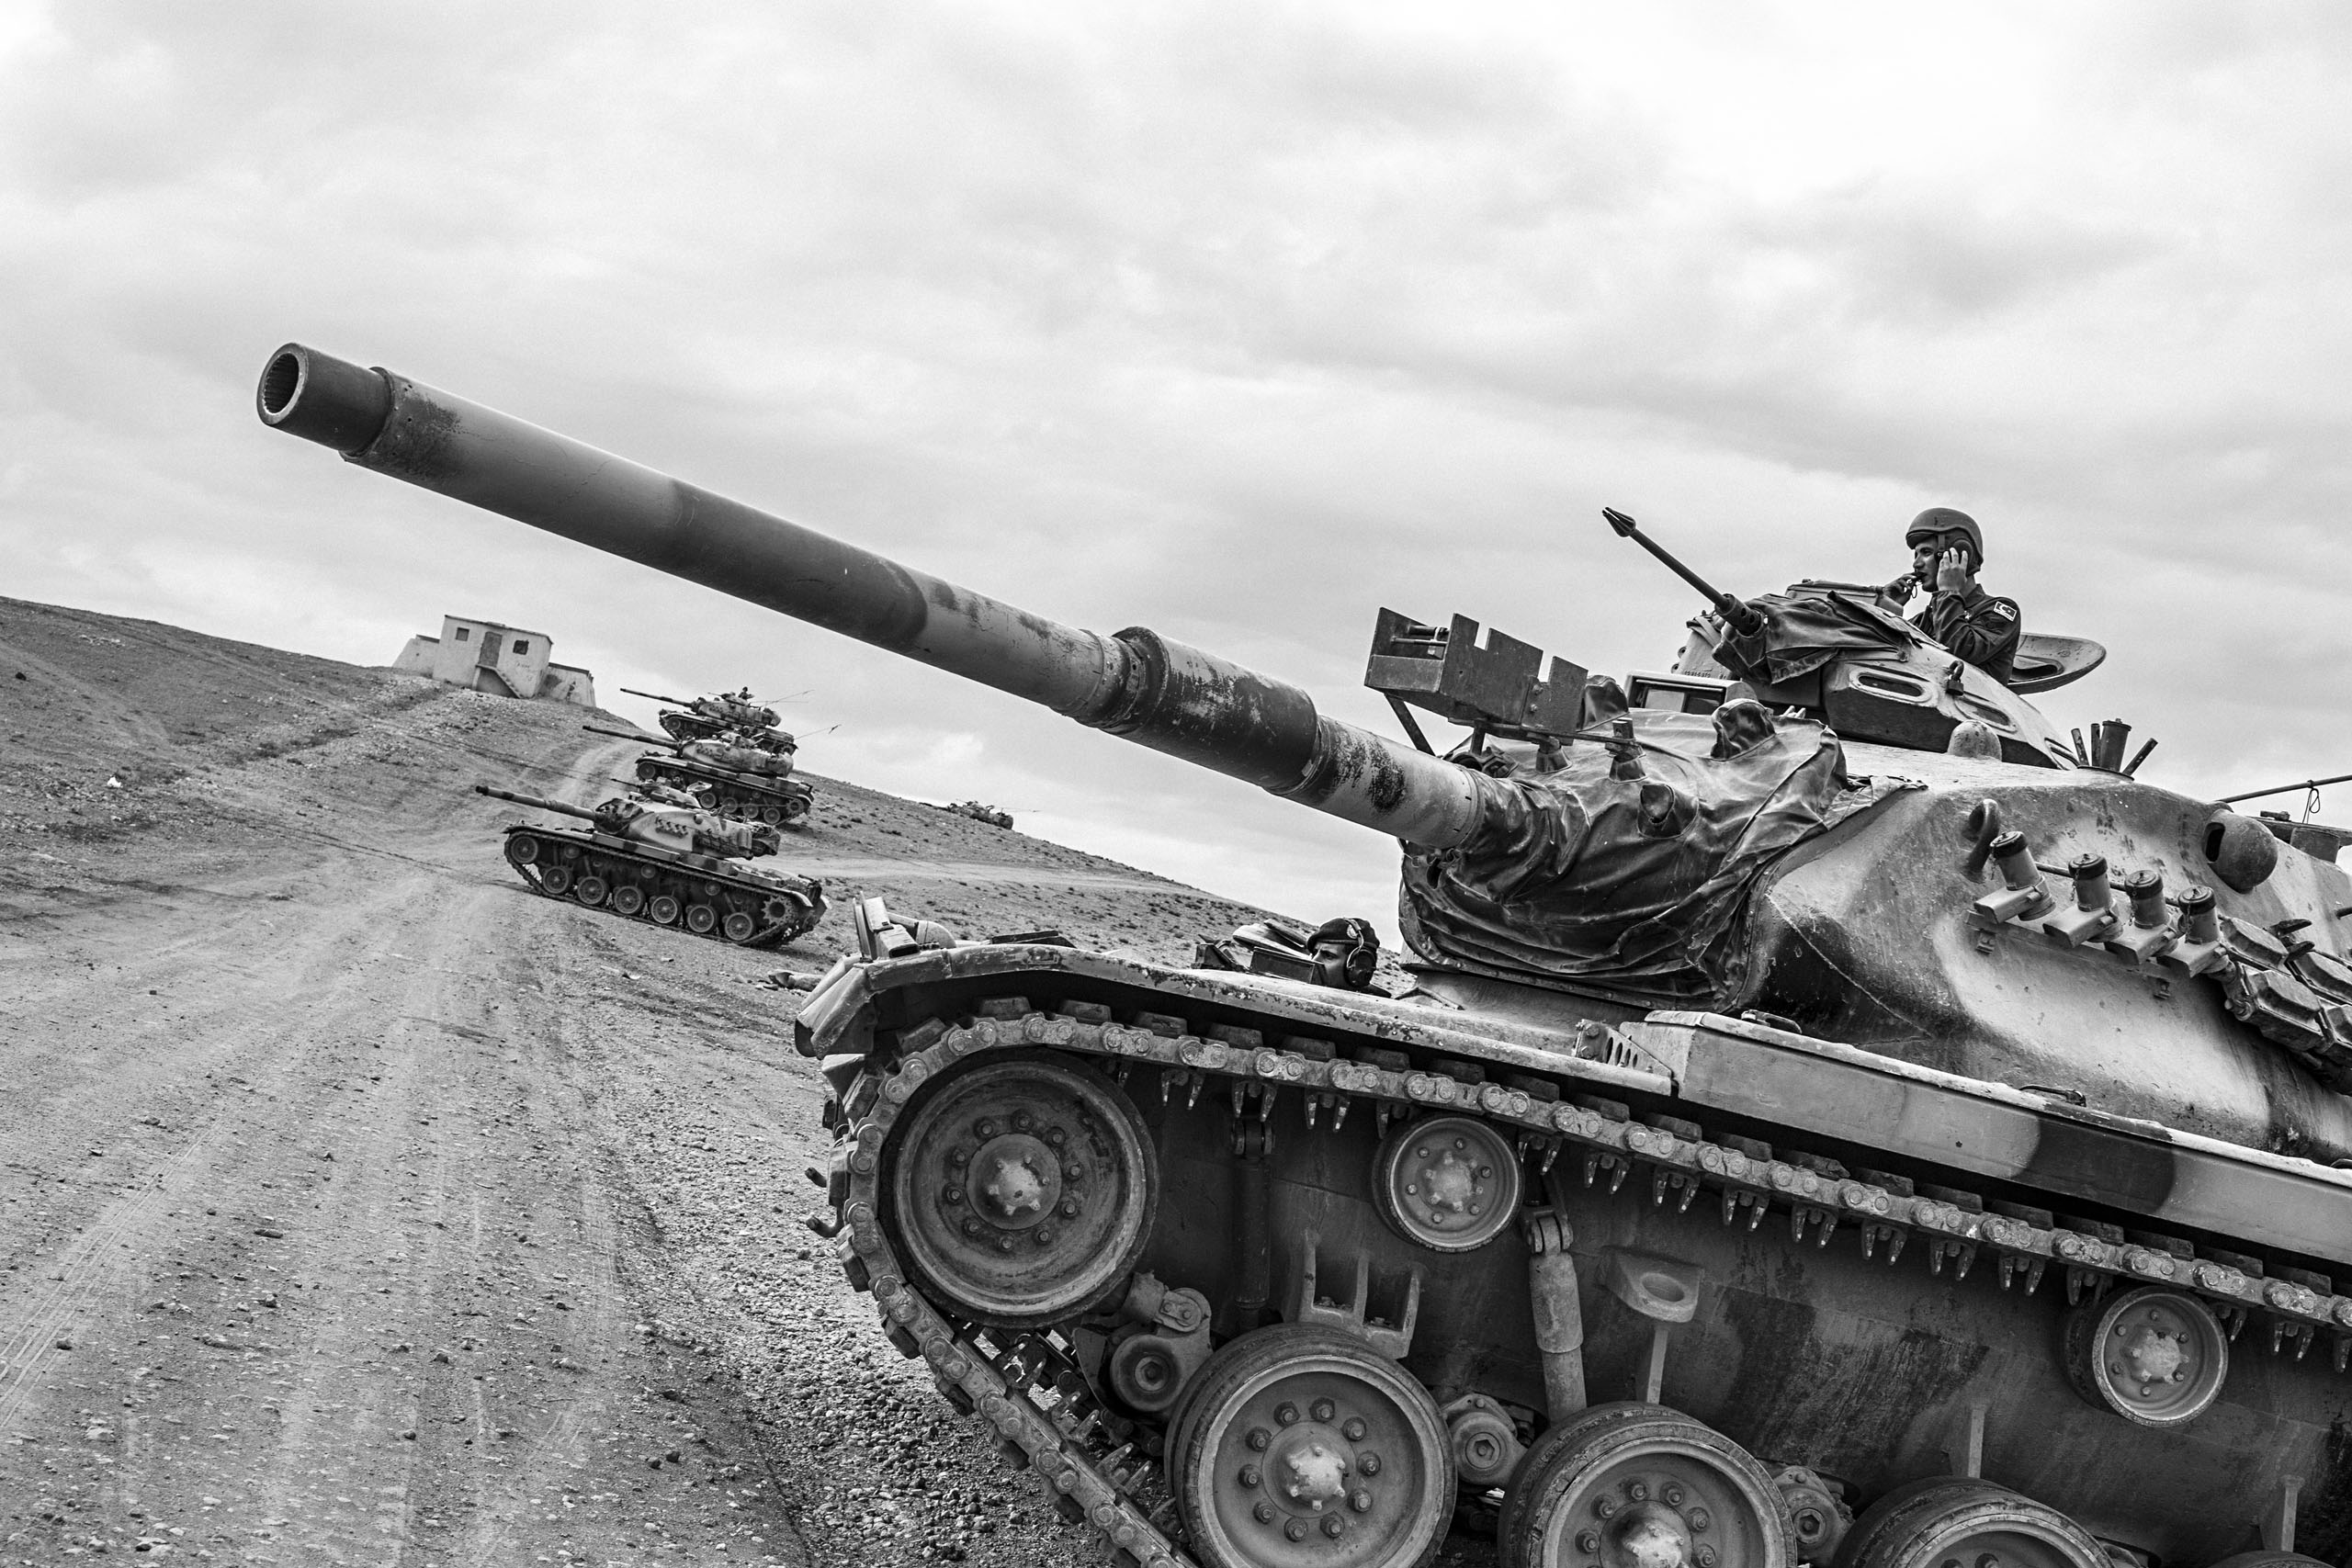 Tanks of the Turkish Armed Forces line the Turkish-Syrian border, as clashes intensified between the Islamic State of Iraq and Levant (ISIL/ISIS) militants and pro-Kurdish Democratic Union Party (PYD) forces, Sept. 2014.